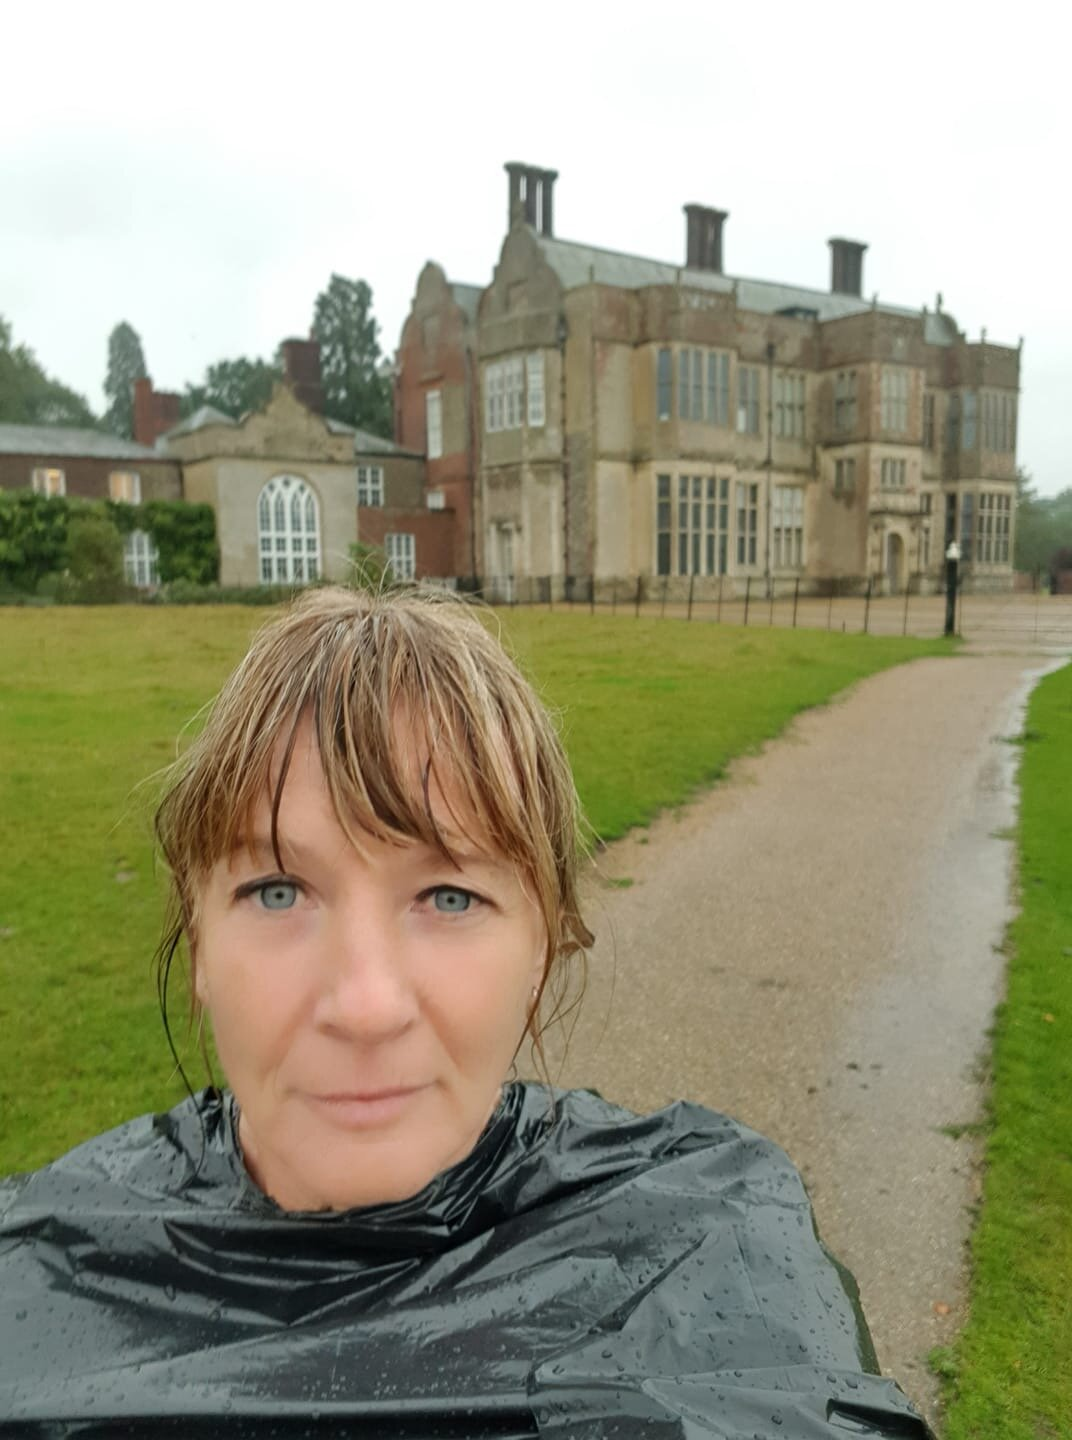 A soggy Nicky McGee at the Felbrigg hall Trail 10k.